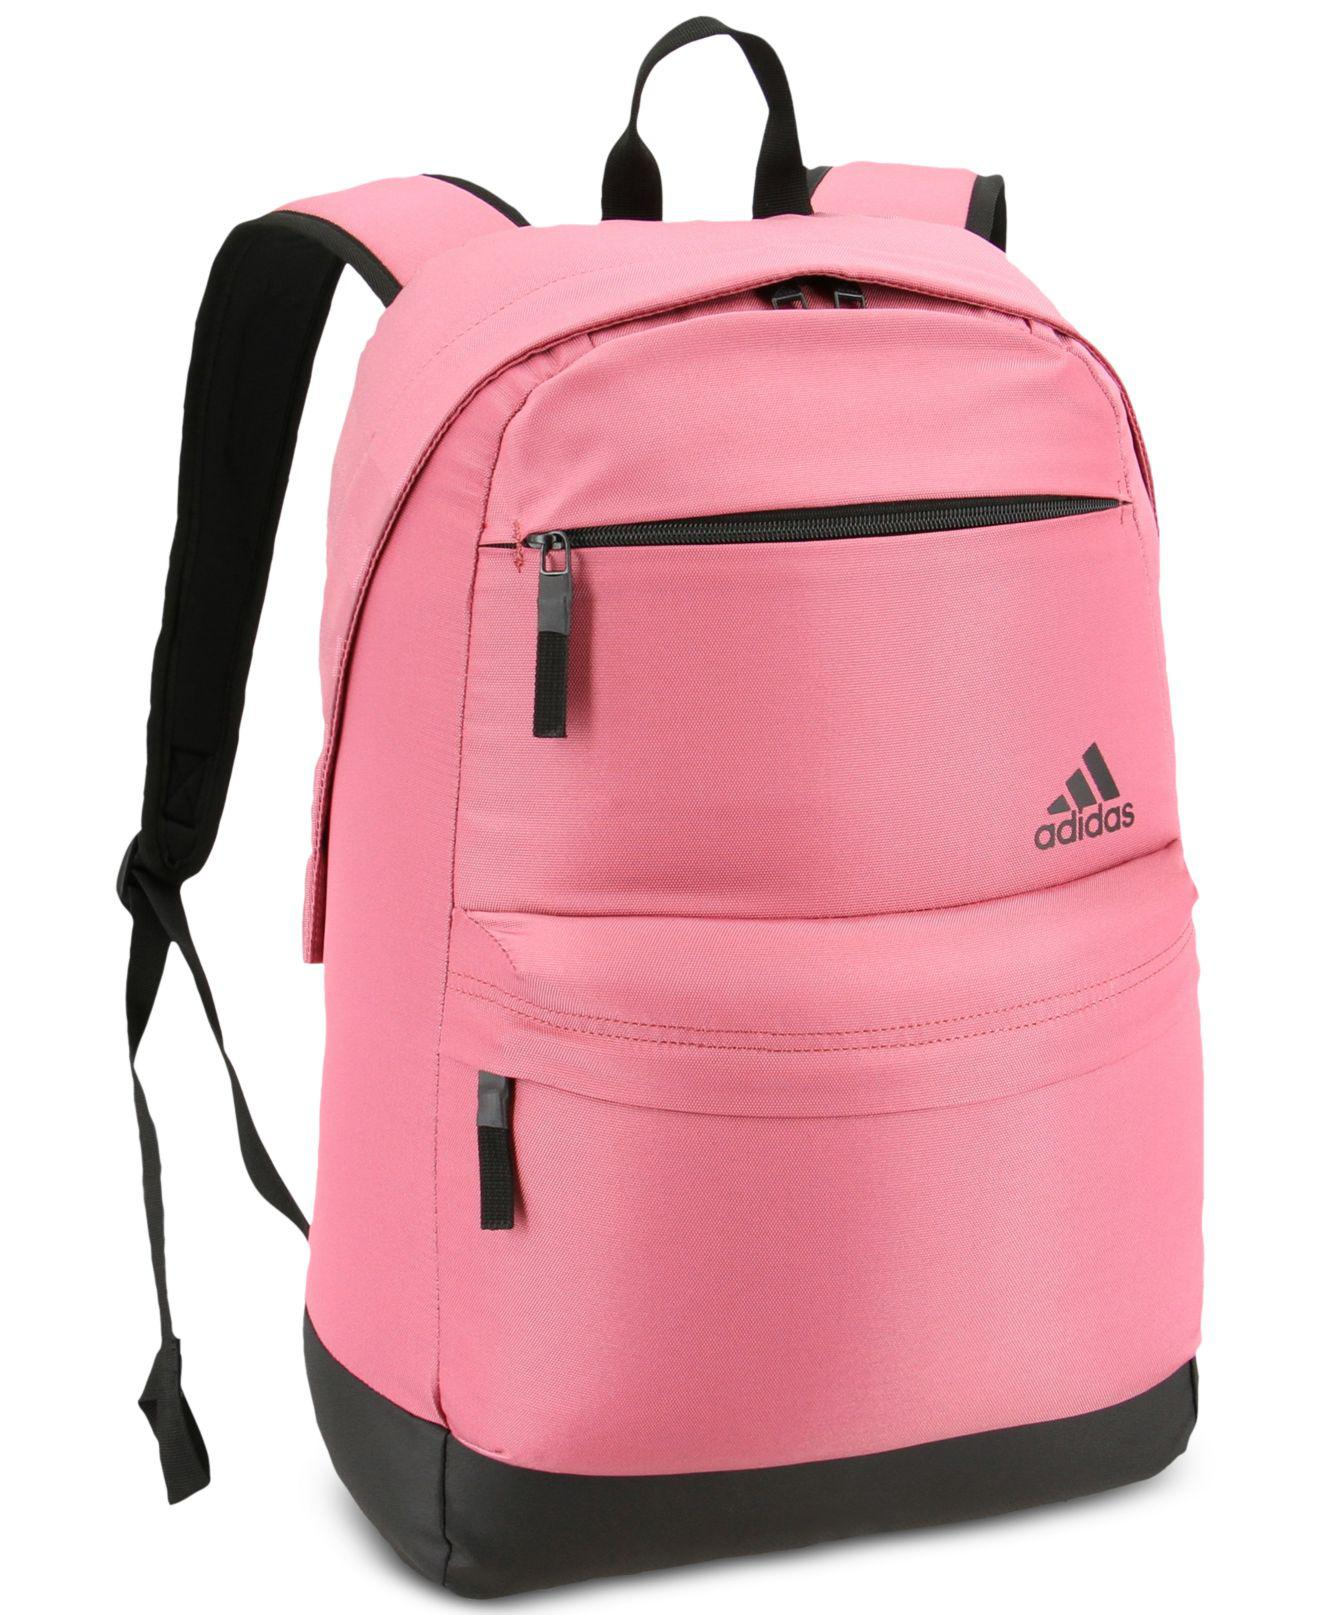 5a31a81c0c Adidas Daybreak Ii Backpack in Pink - Lyst